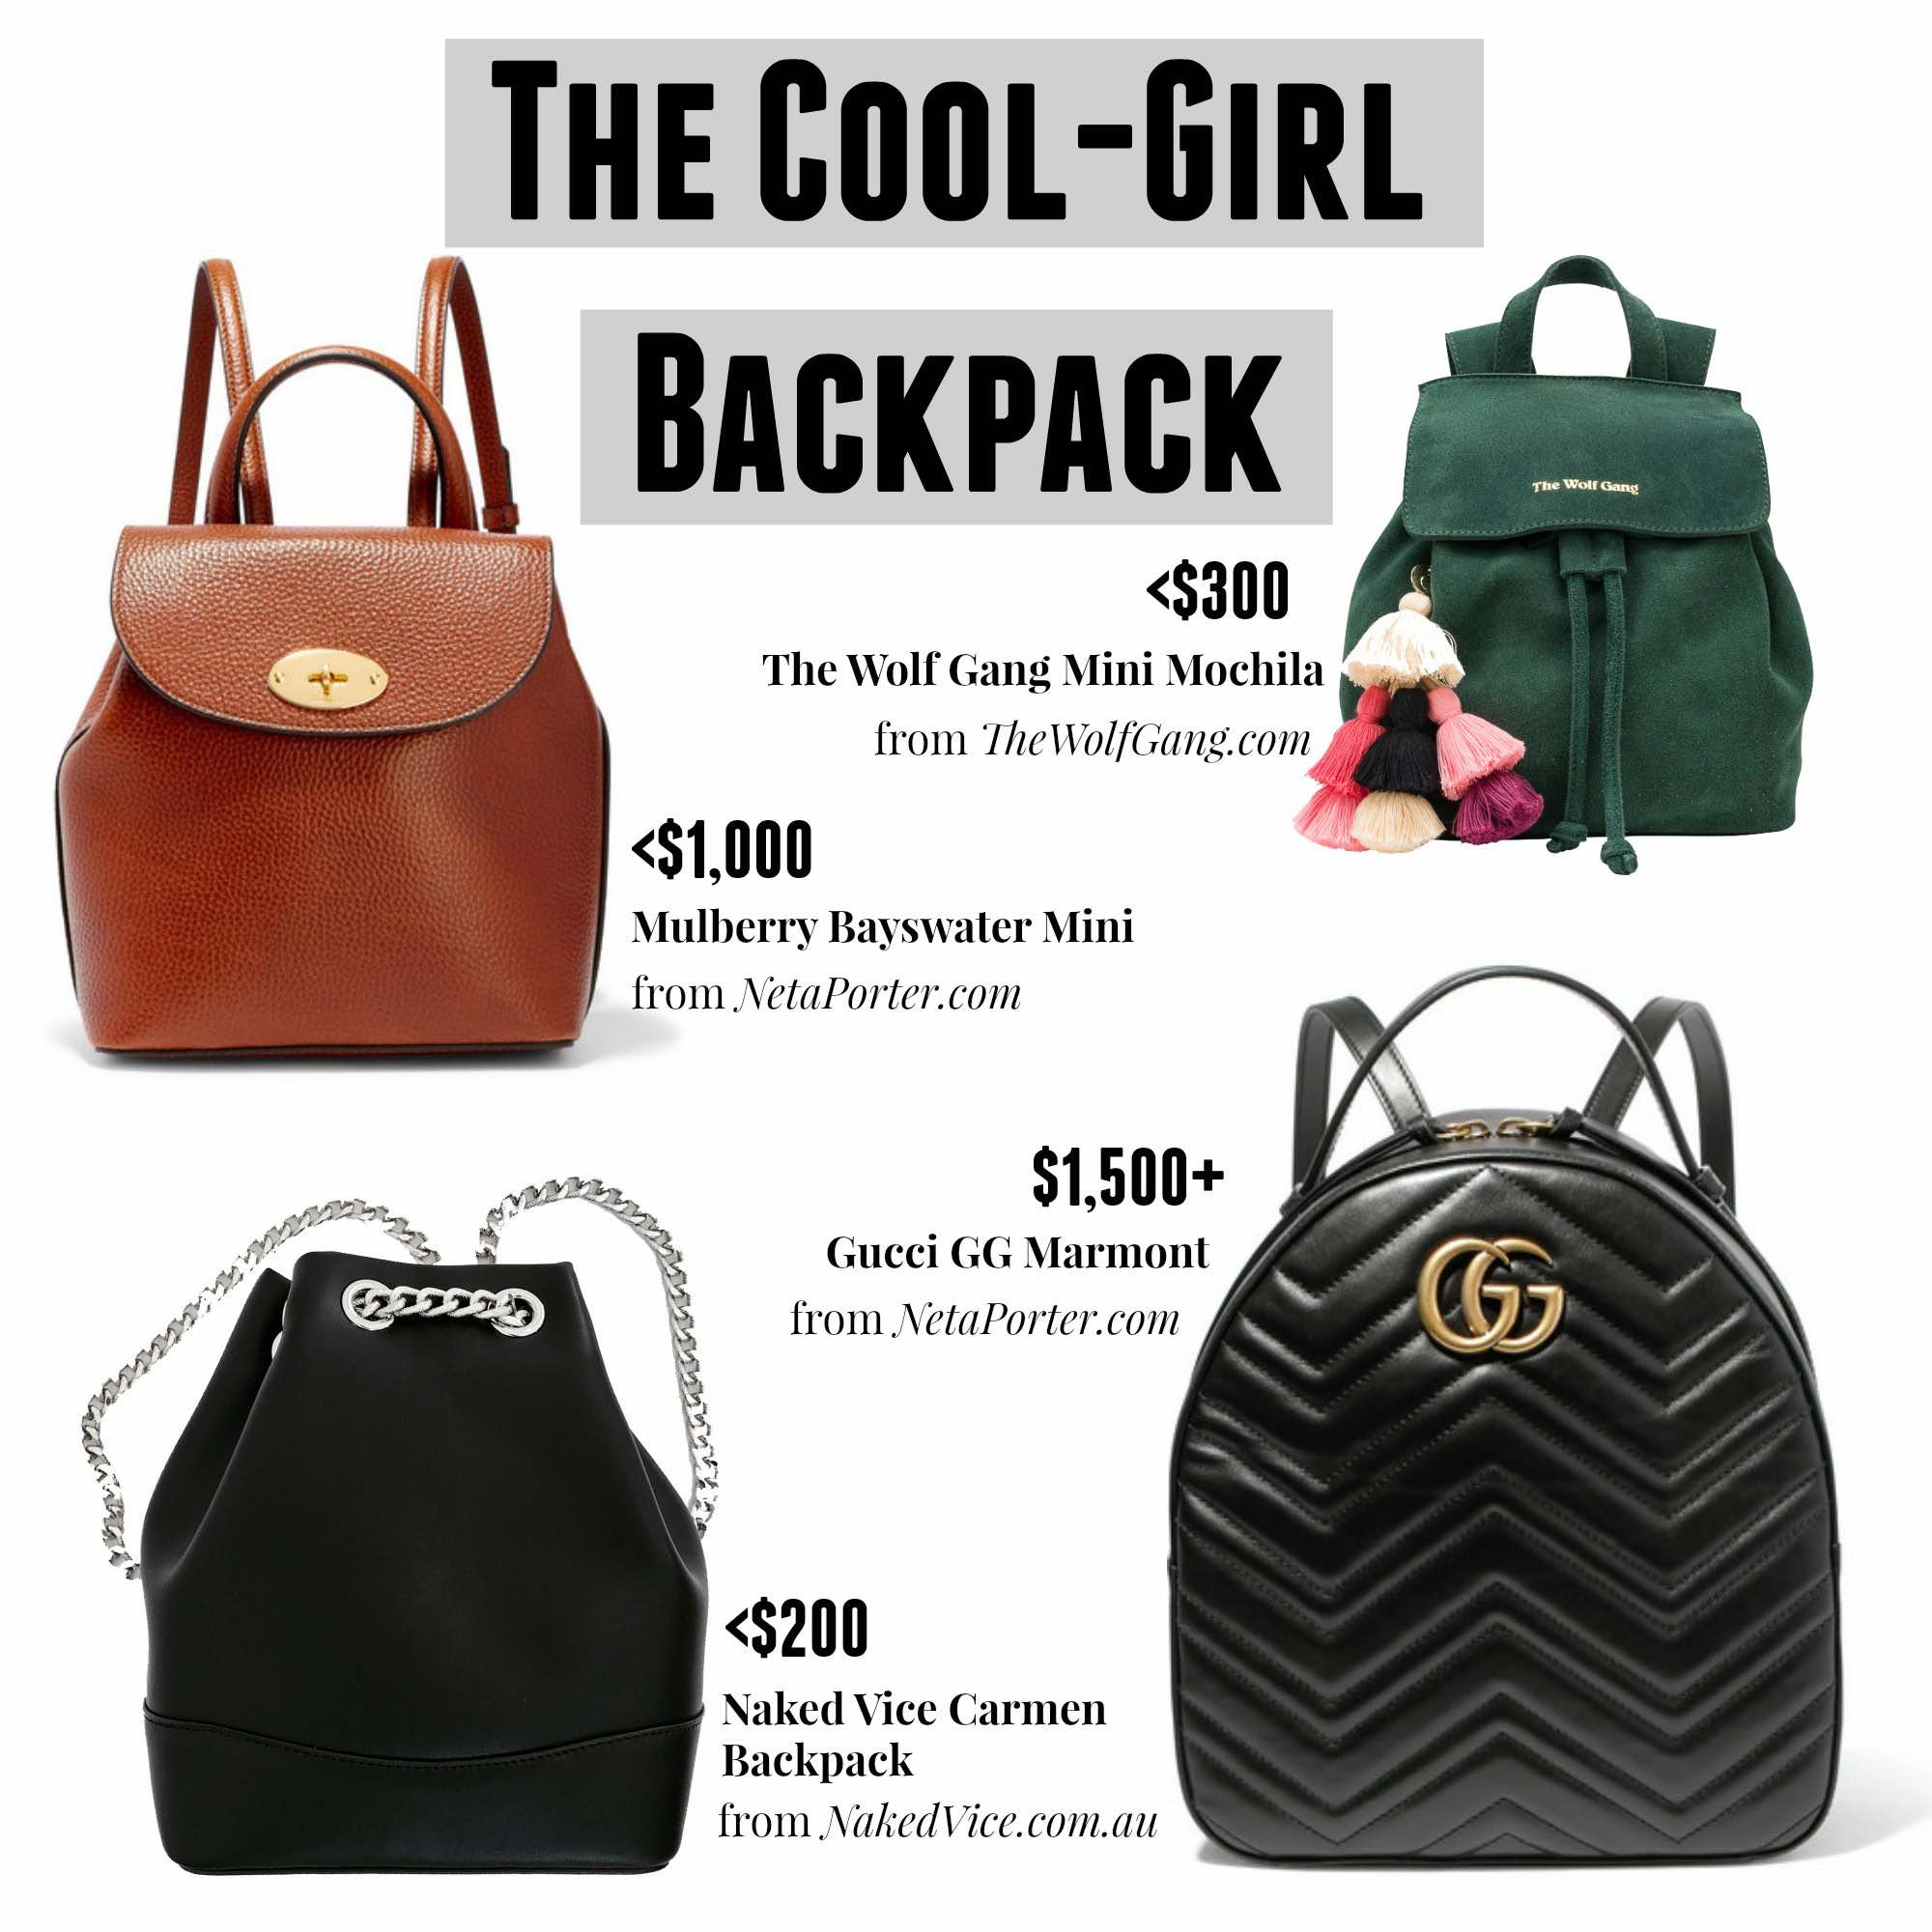 The Cool-Girl Backpack